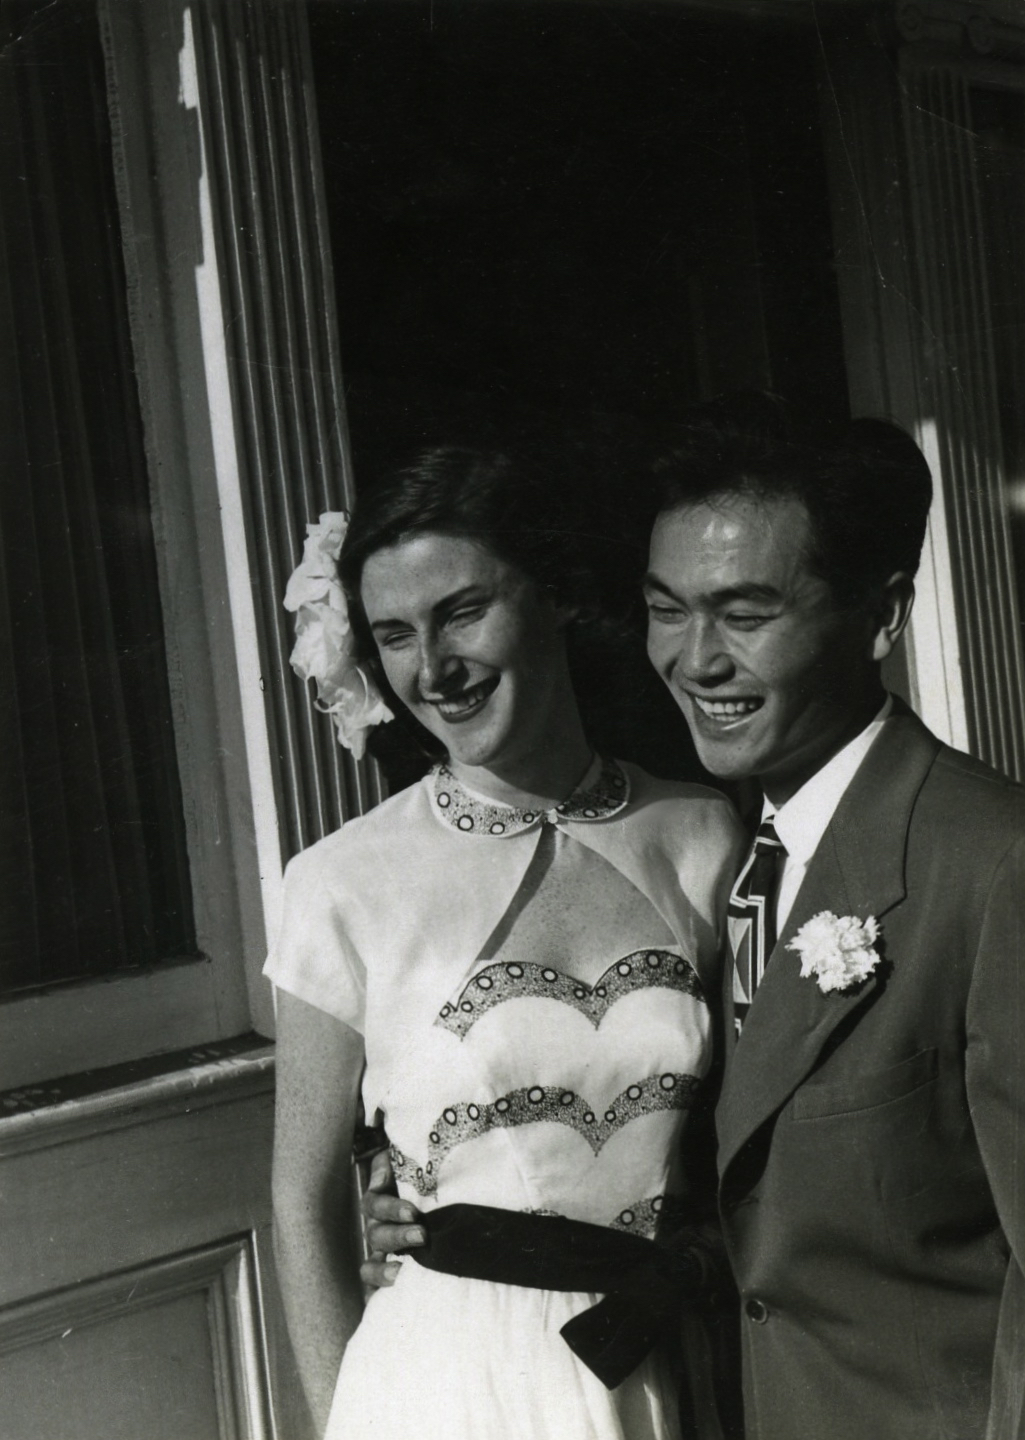 A black and white photo of Dorothy Walker and Joe Kamiya with their arms around each other and smiling in front of a house